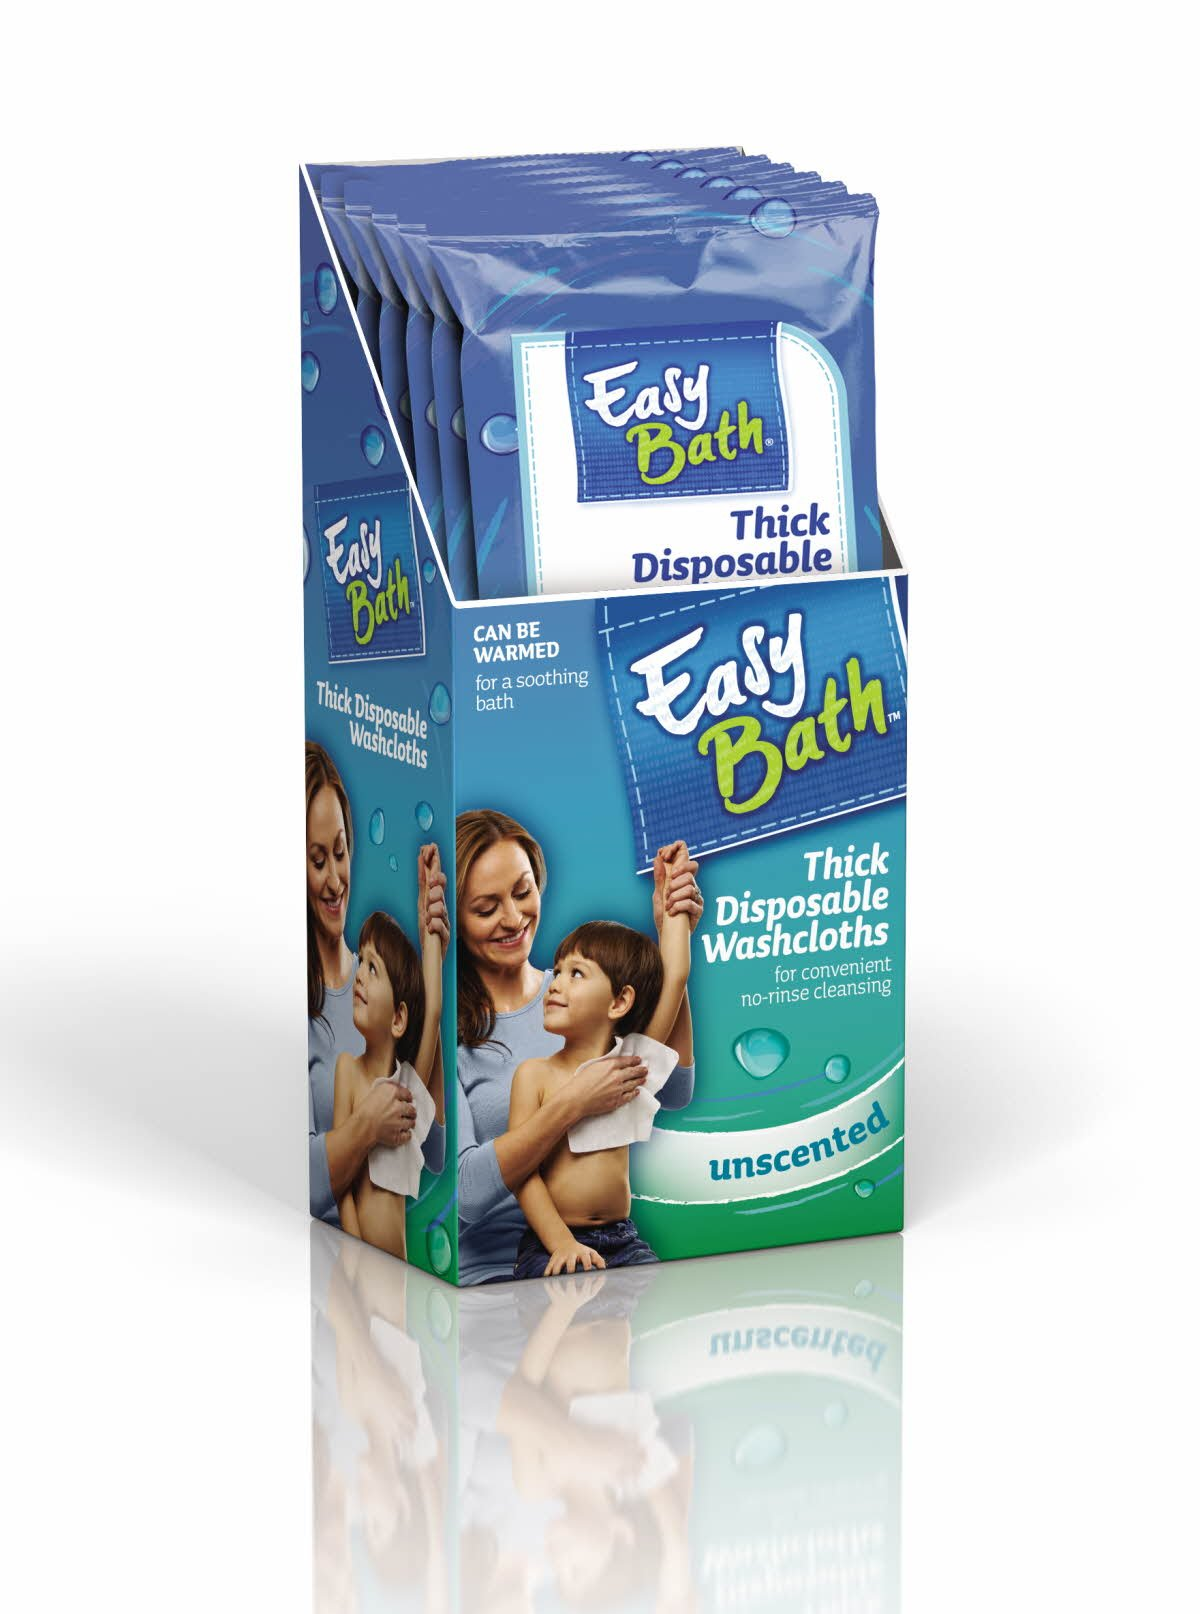 EasyBath Thick Disposable Washcloths, Unscented, 5 Count (Pack of 6)